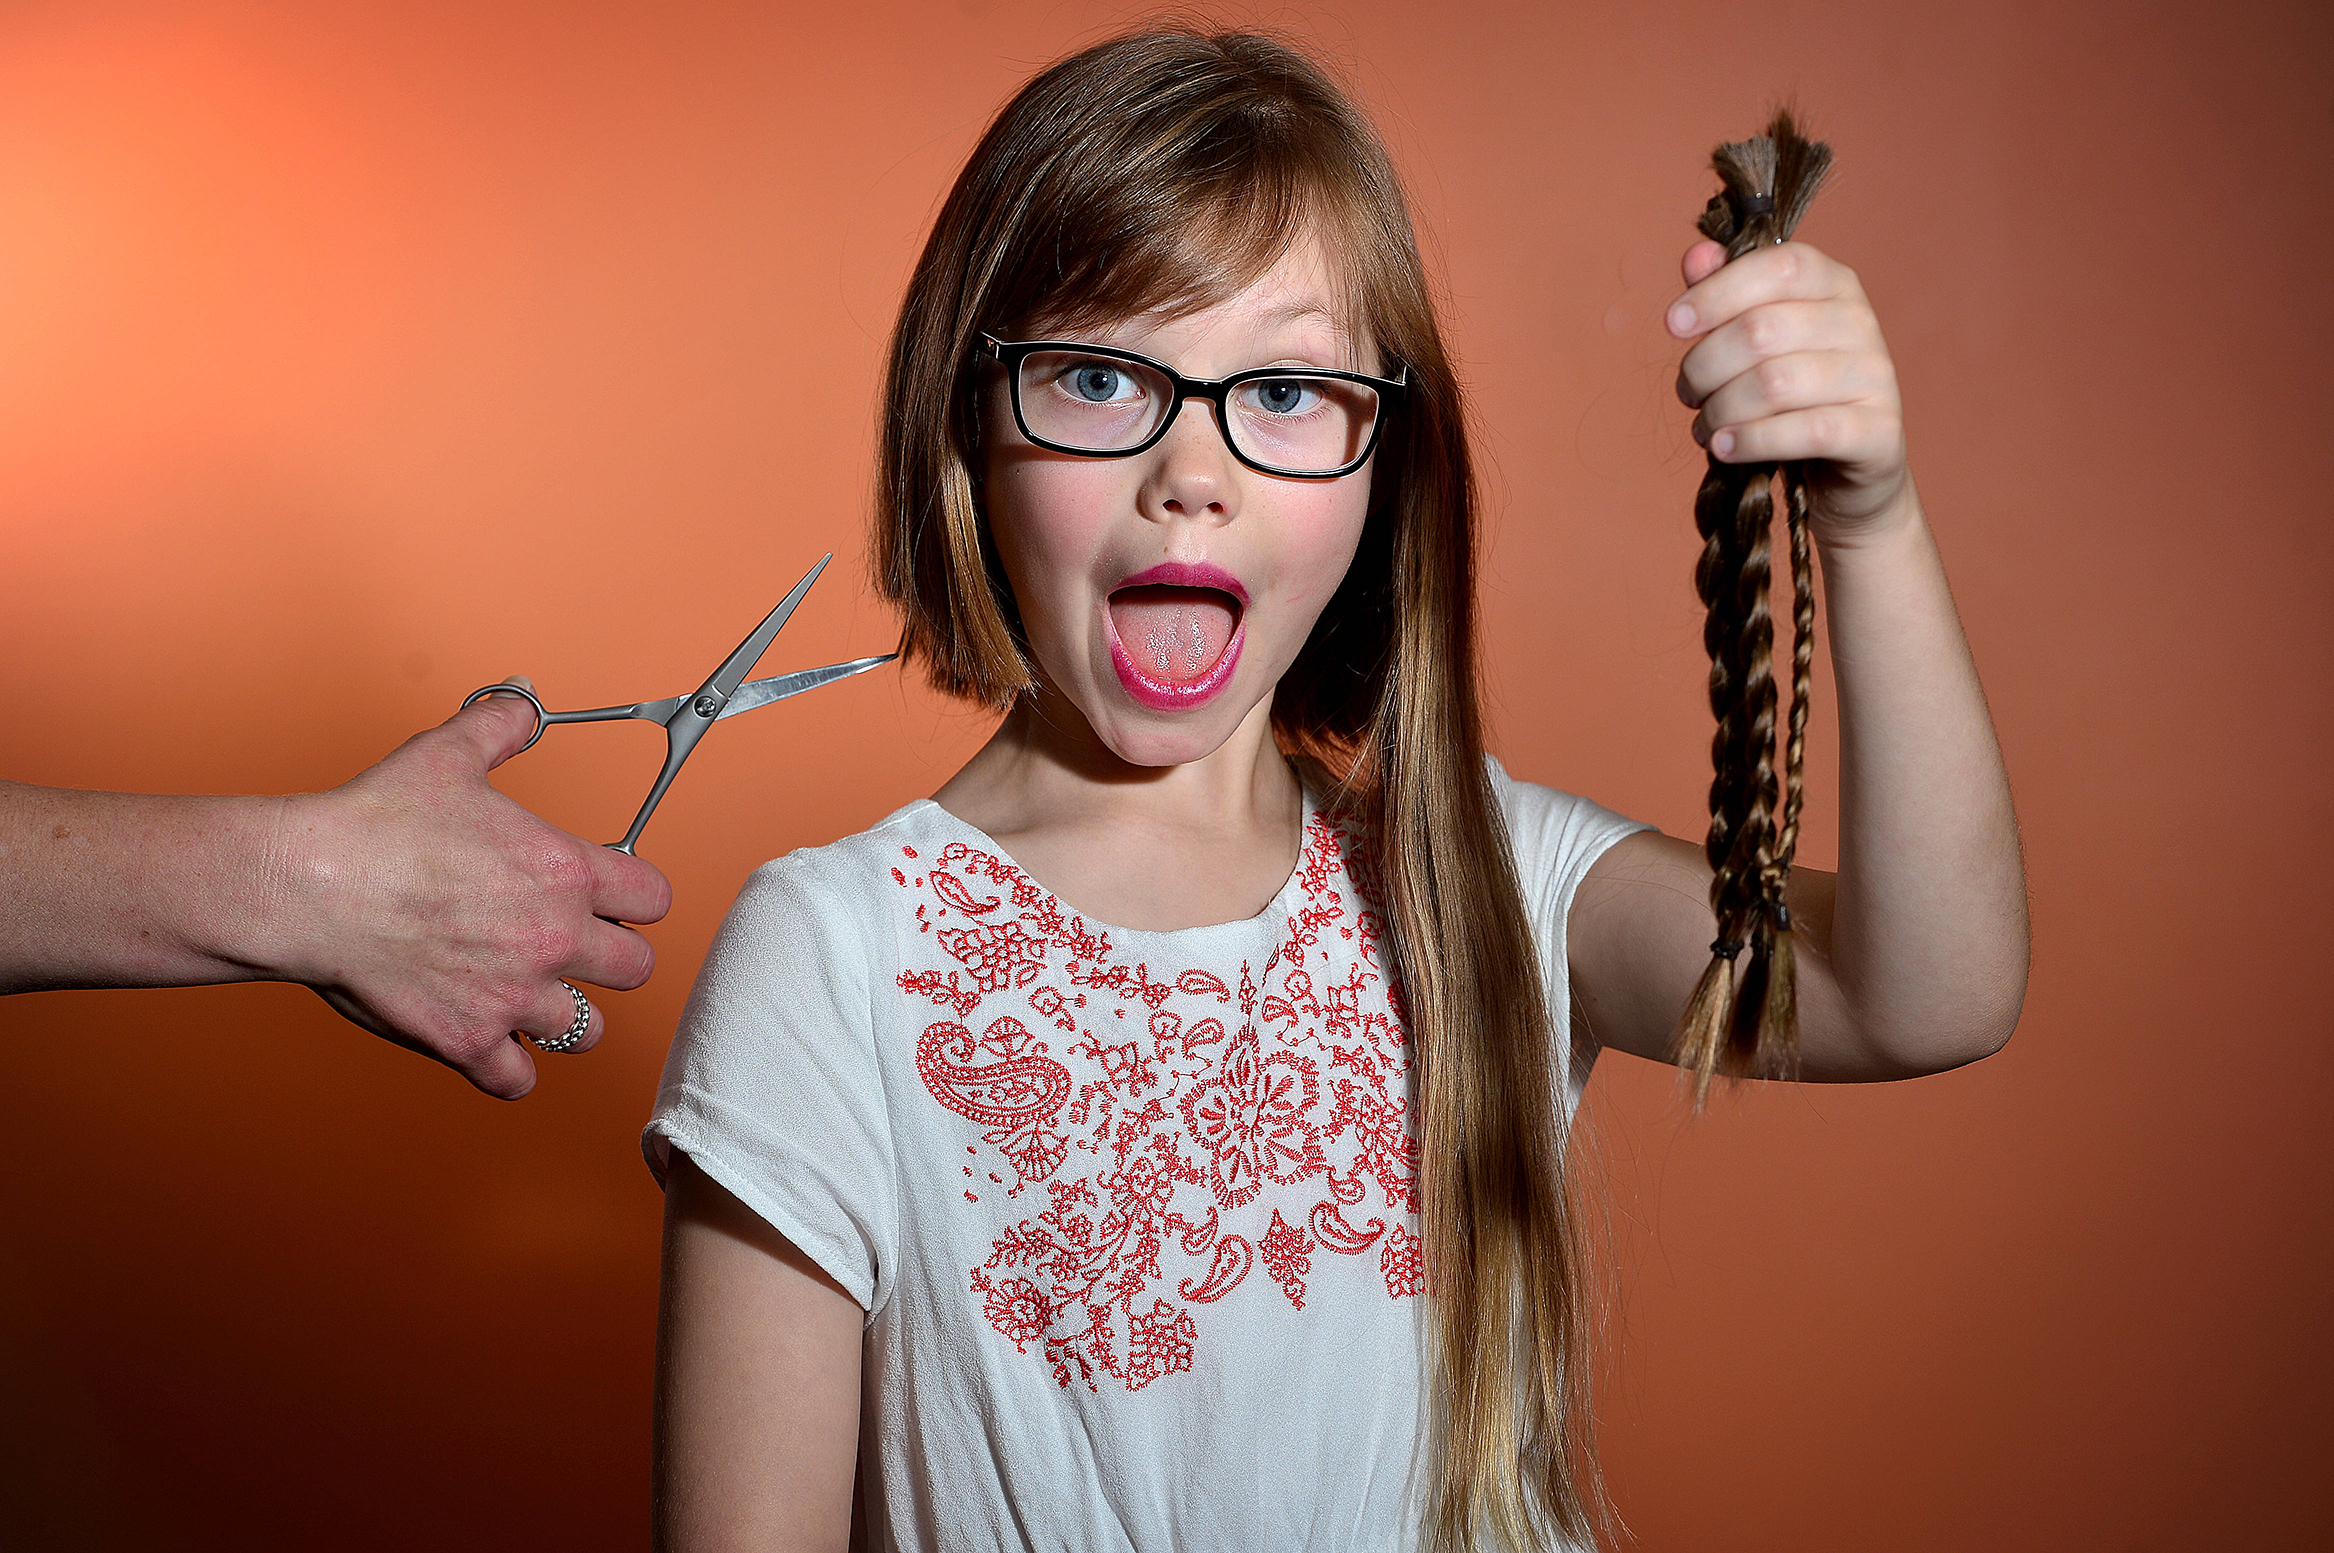 CHP_Export_152927497_8year old Matilda Ebert is cutting most of her hair off as part of World%27s Grea.jpg